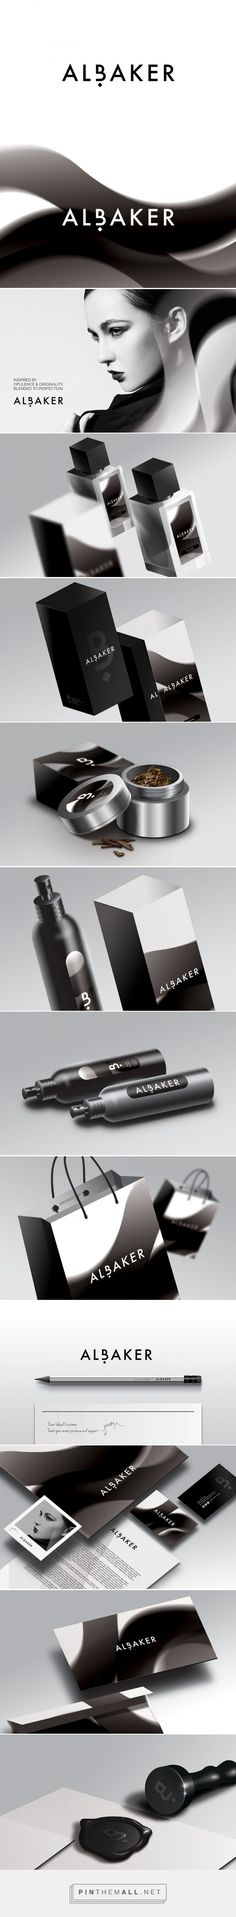 ALBAKER on Behance by Studio AIO curated by Packaging Diva PD. Nice study in black and white packaging.